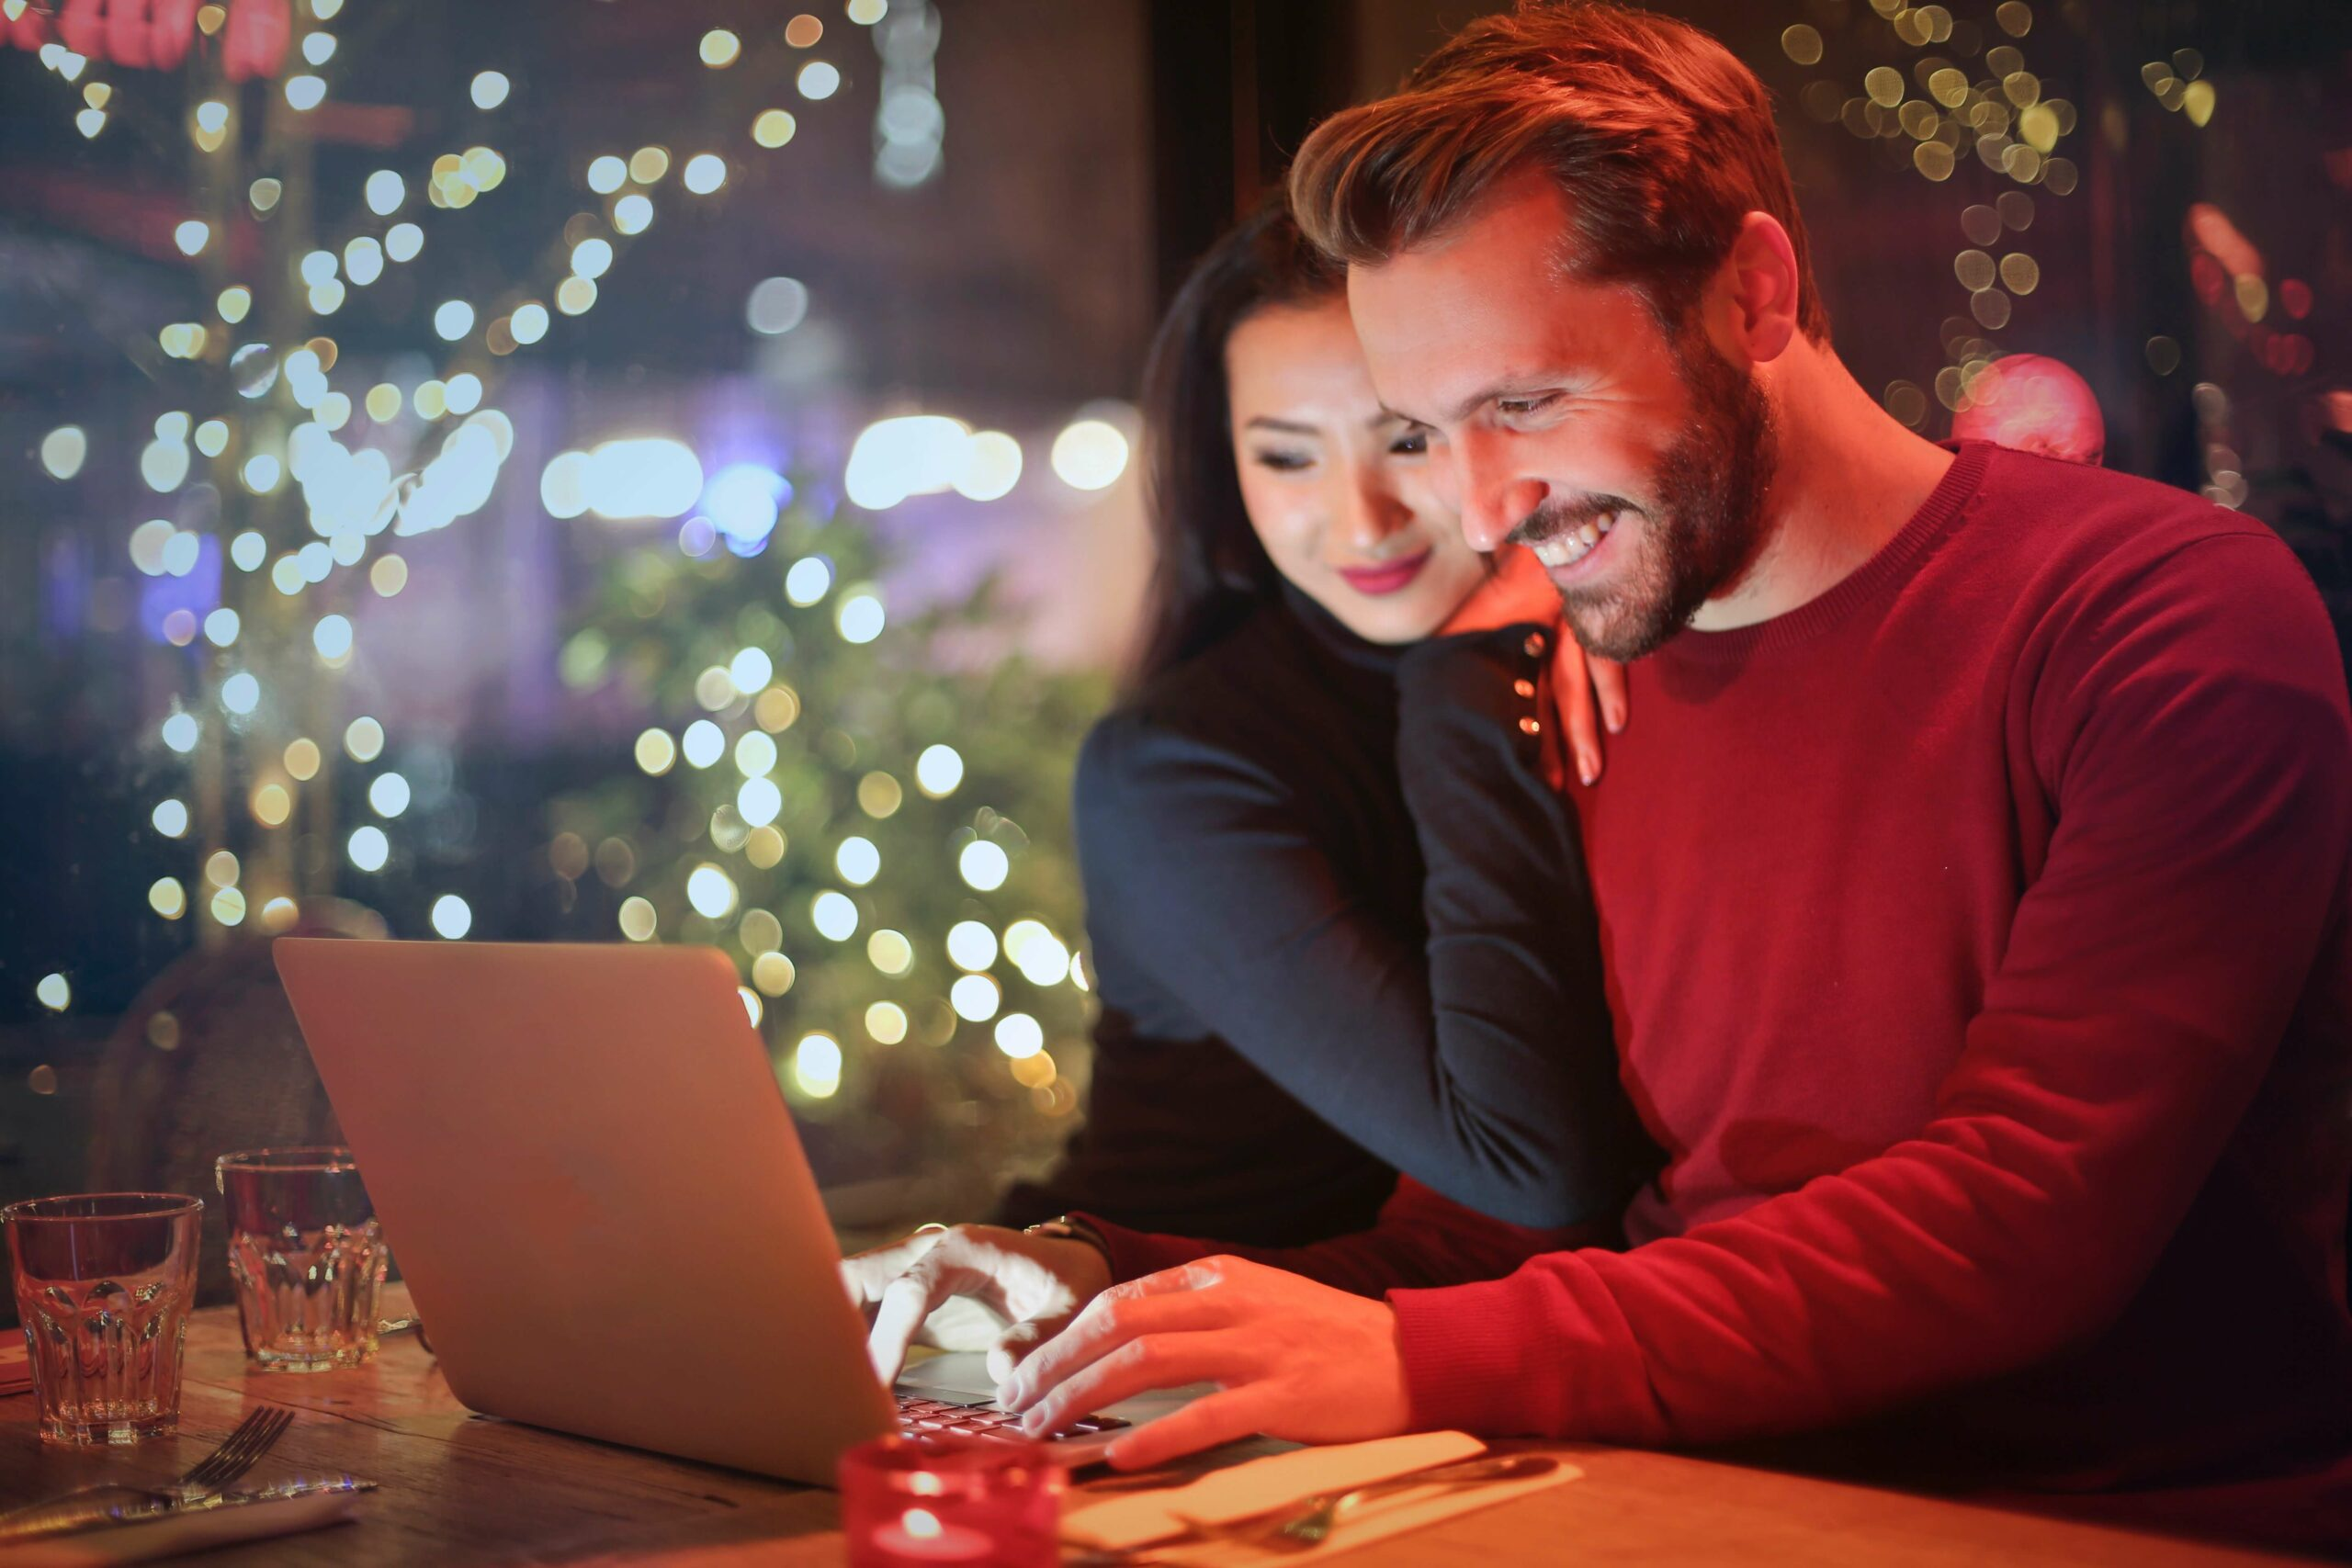 man and woman smiling at a computer in front of a Christmas tree